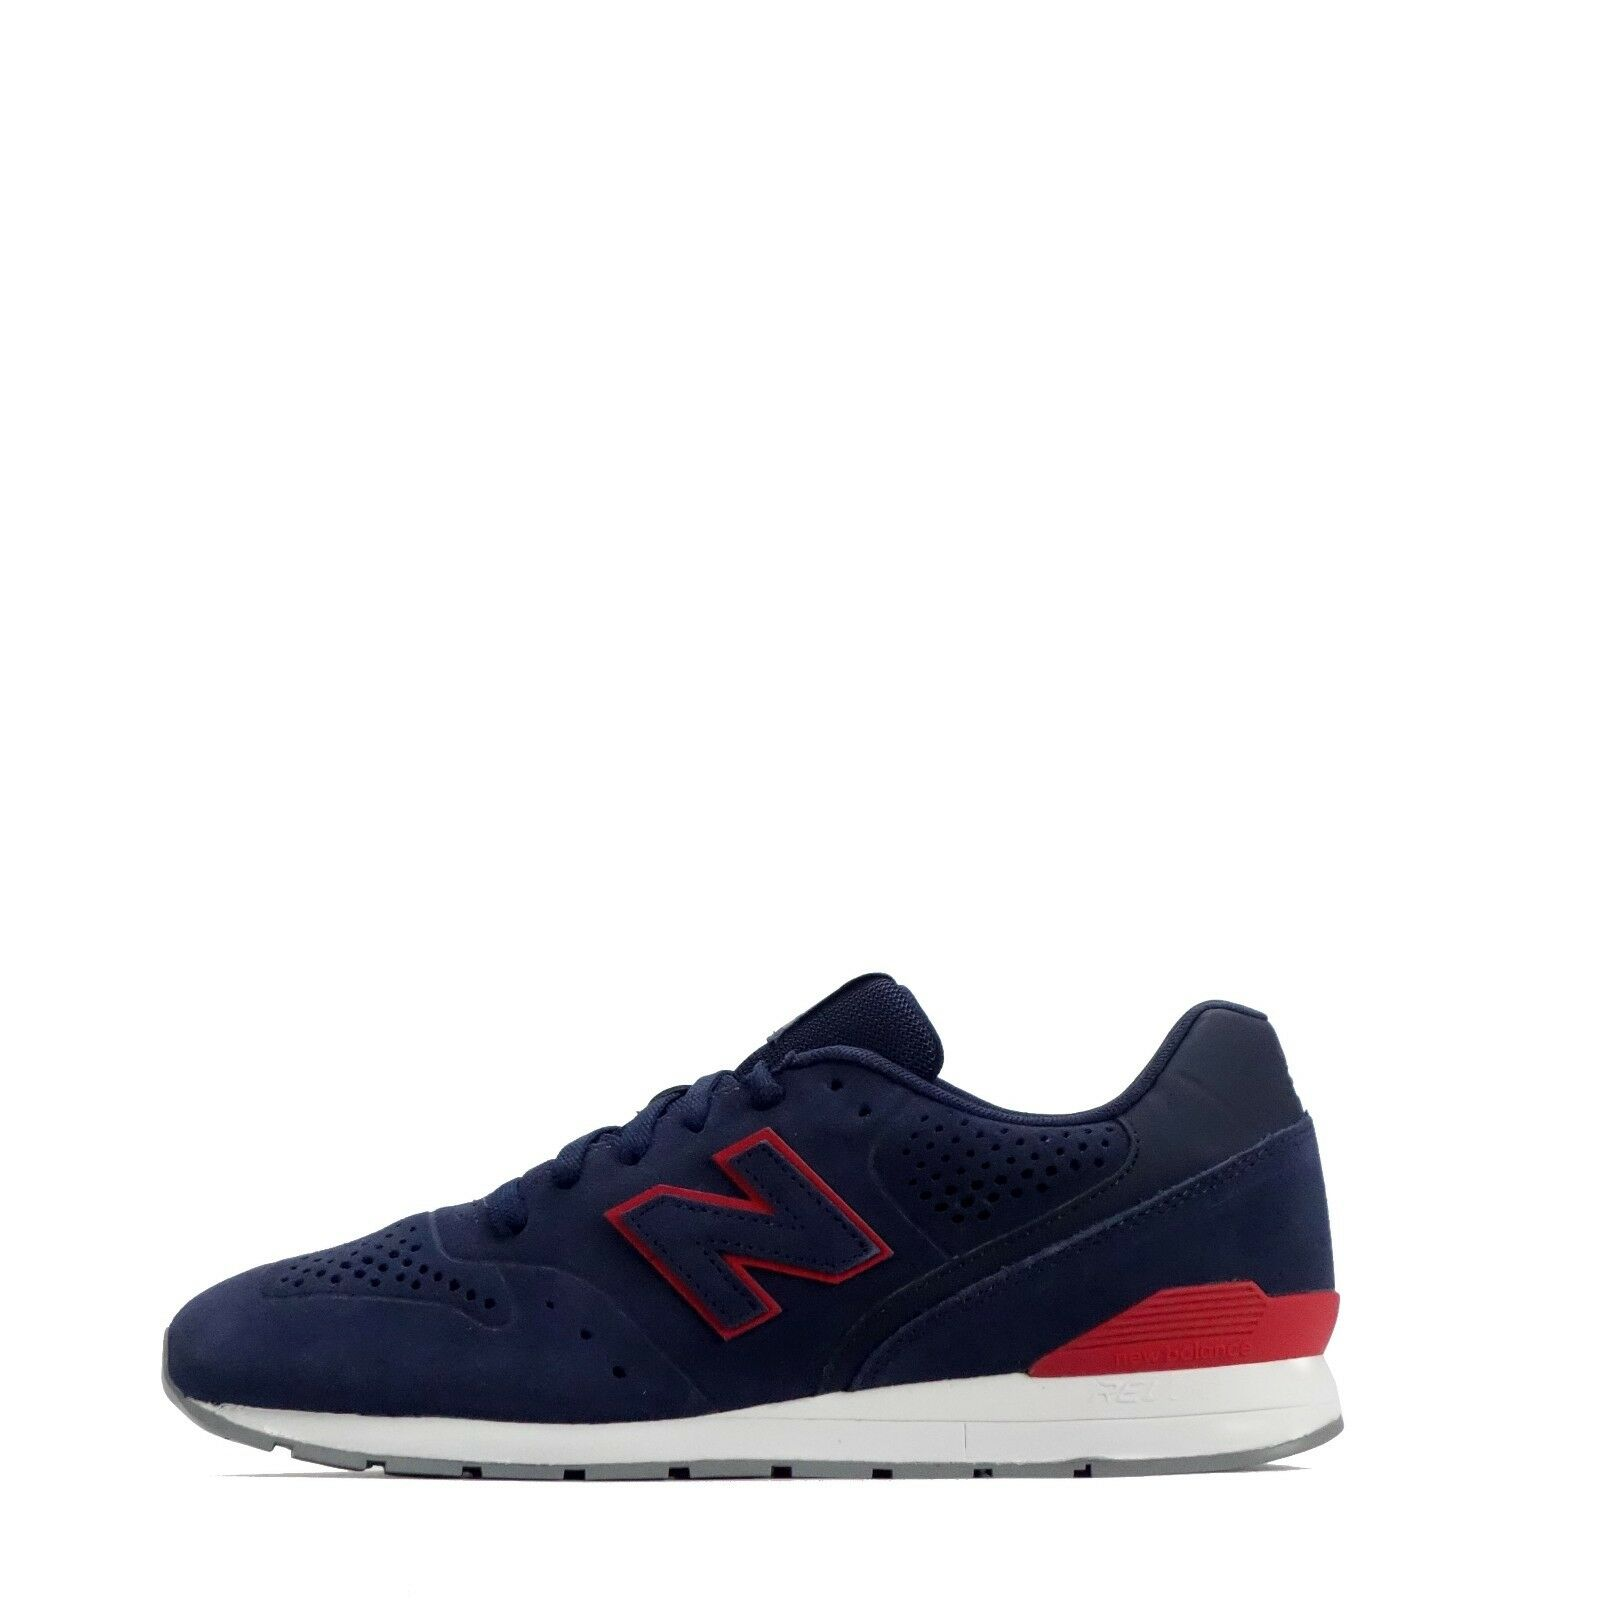 New Balance 996 Re Re Re Engineered Men's Suede Retro Low Top shoes in bluee ace249